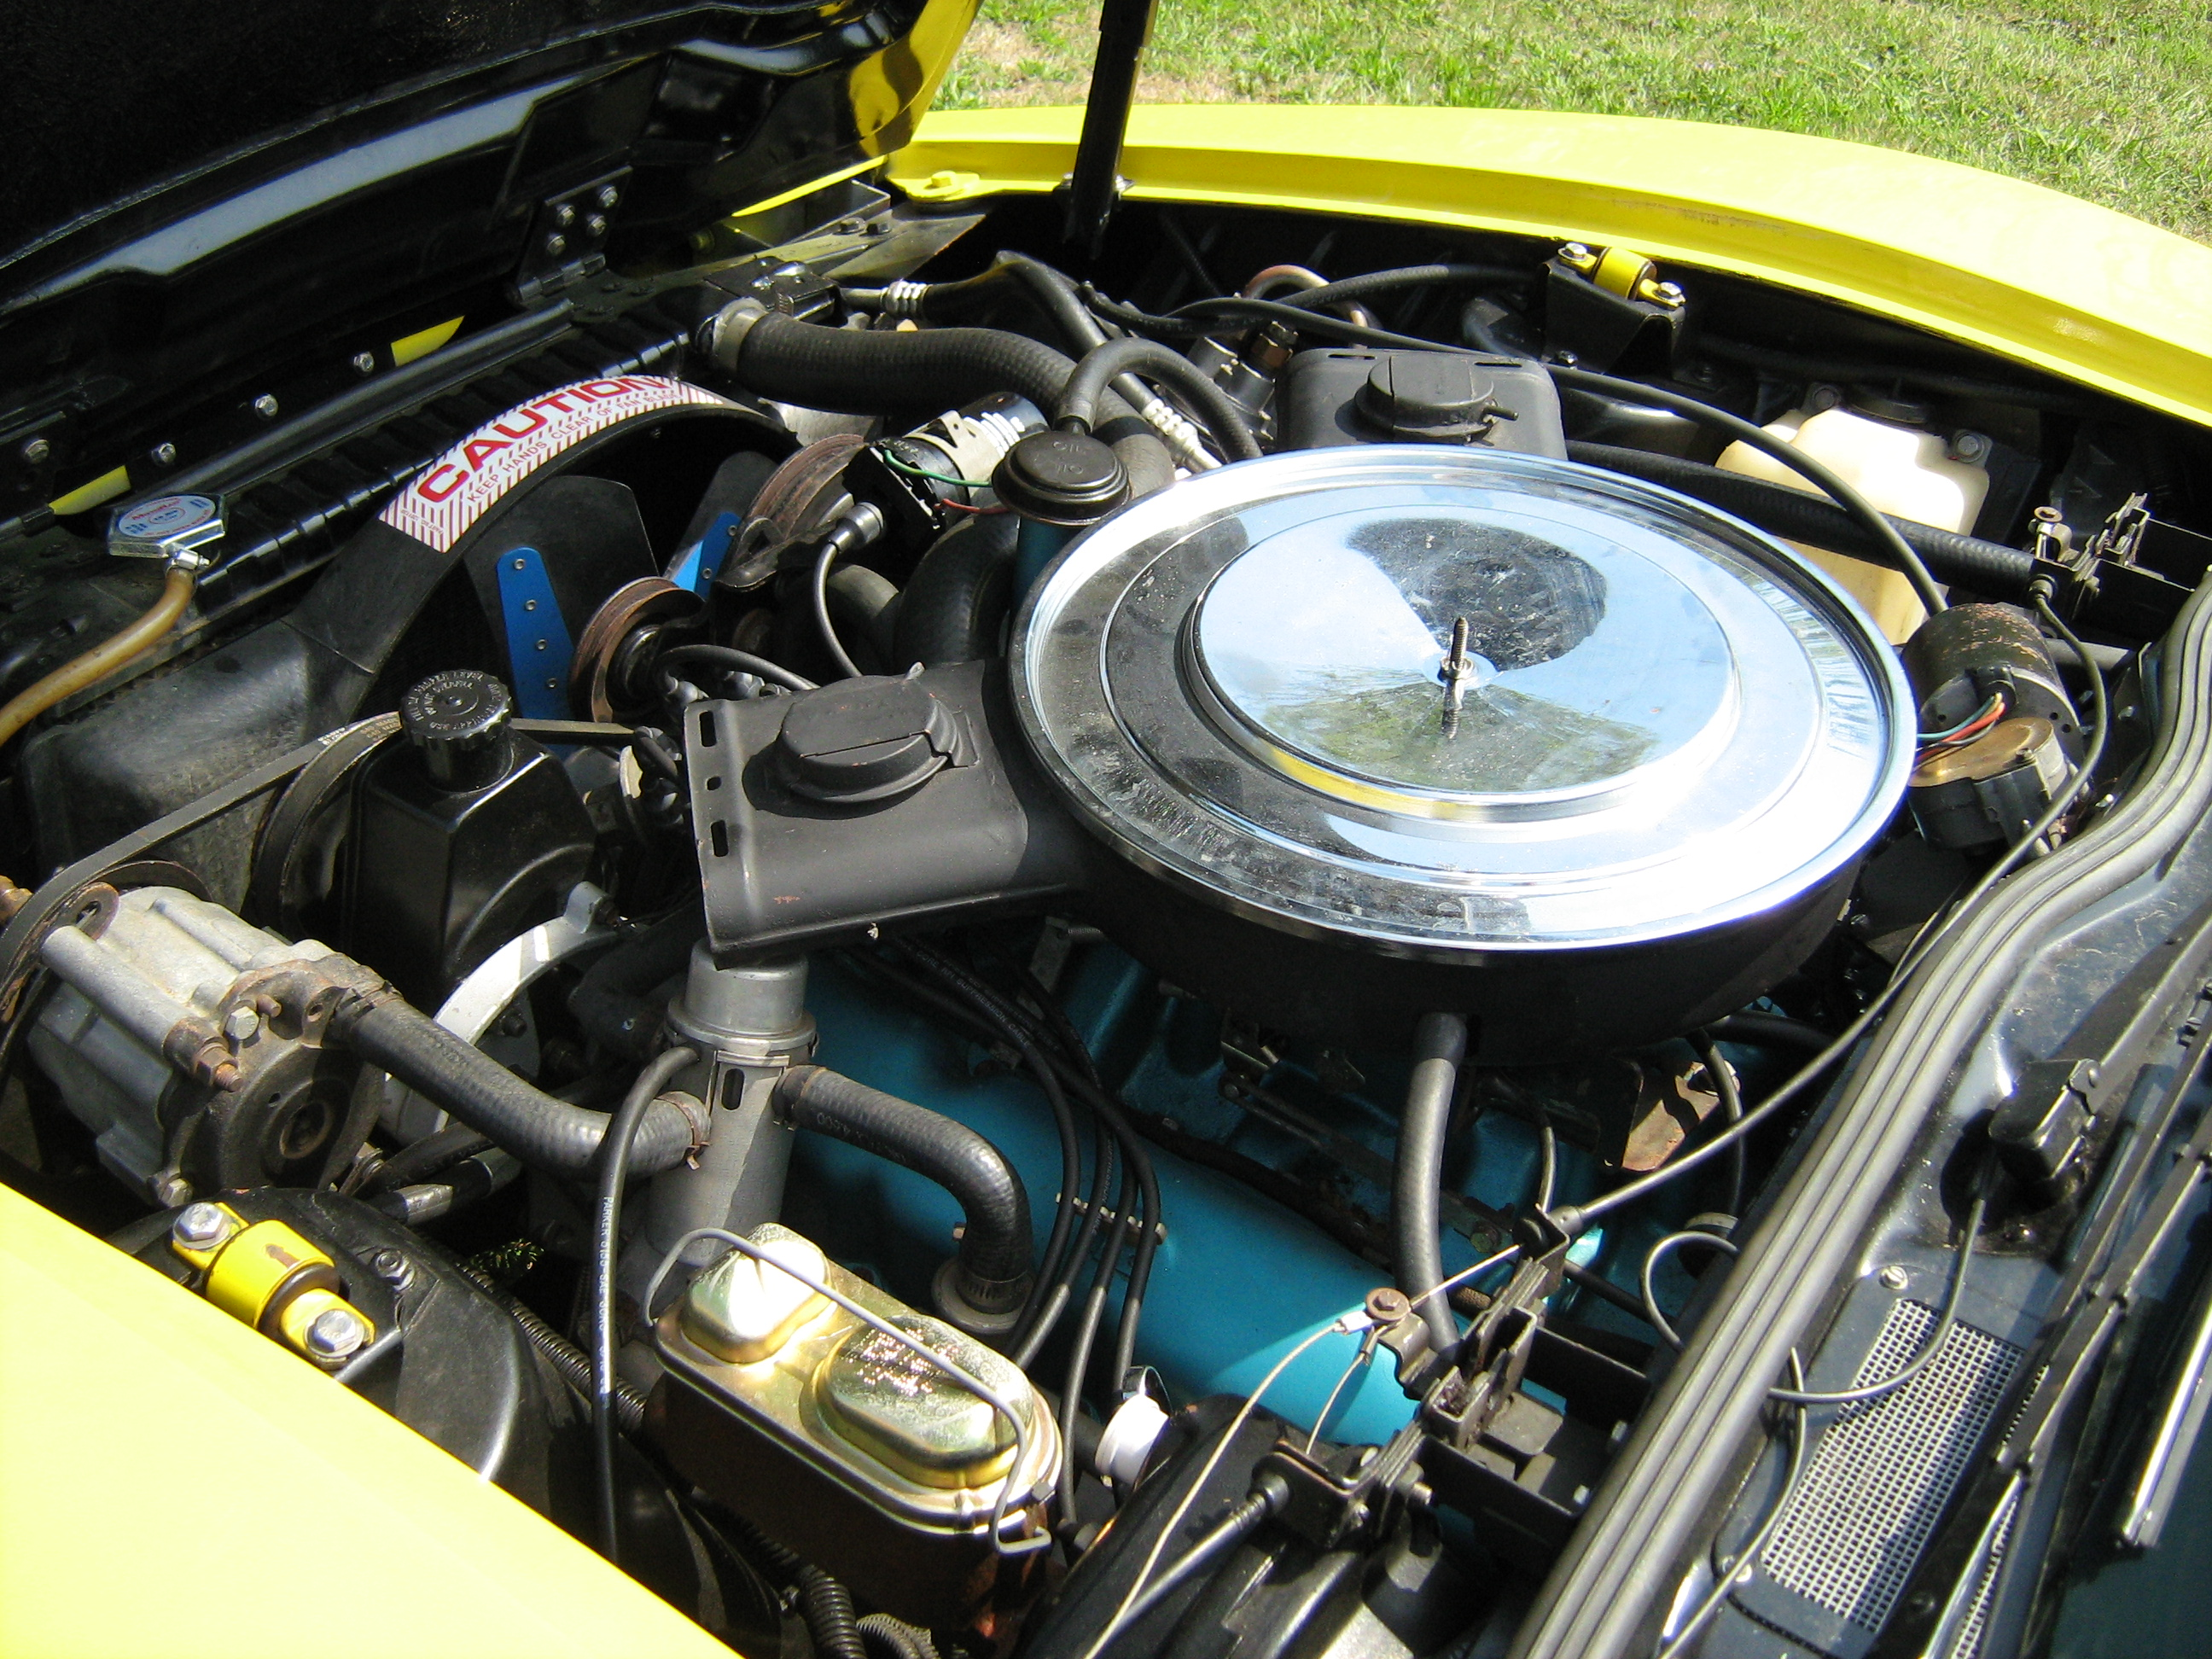 An automatic transmission is important, so choose carefully. Image source: Wikimedia Commons